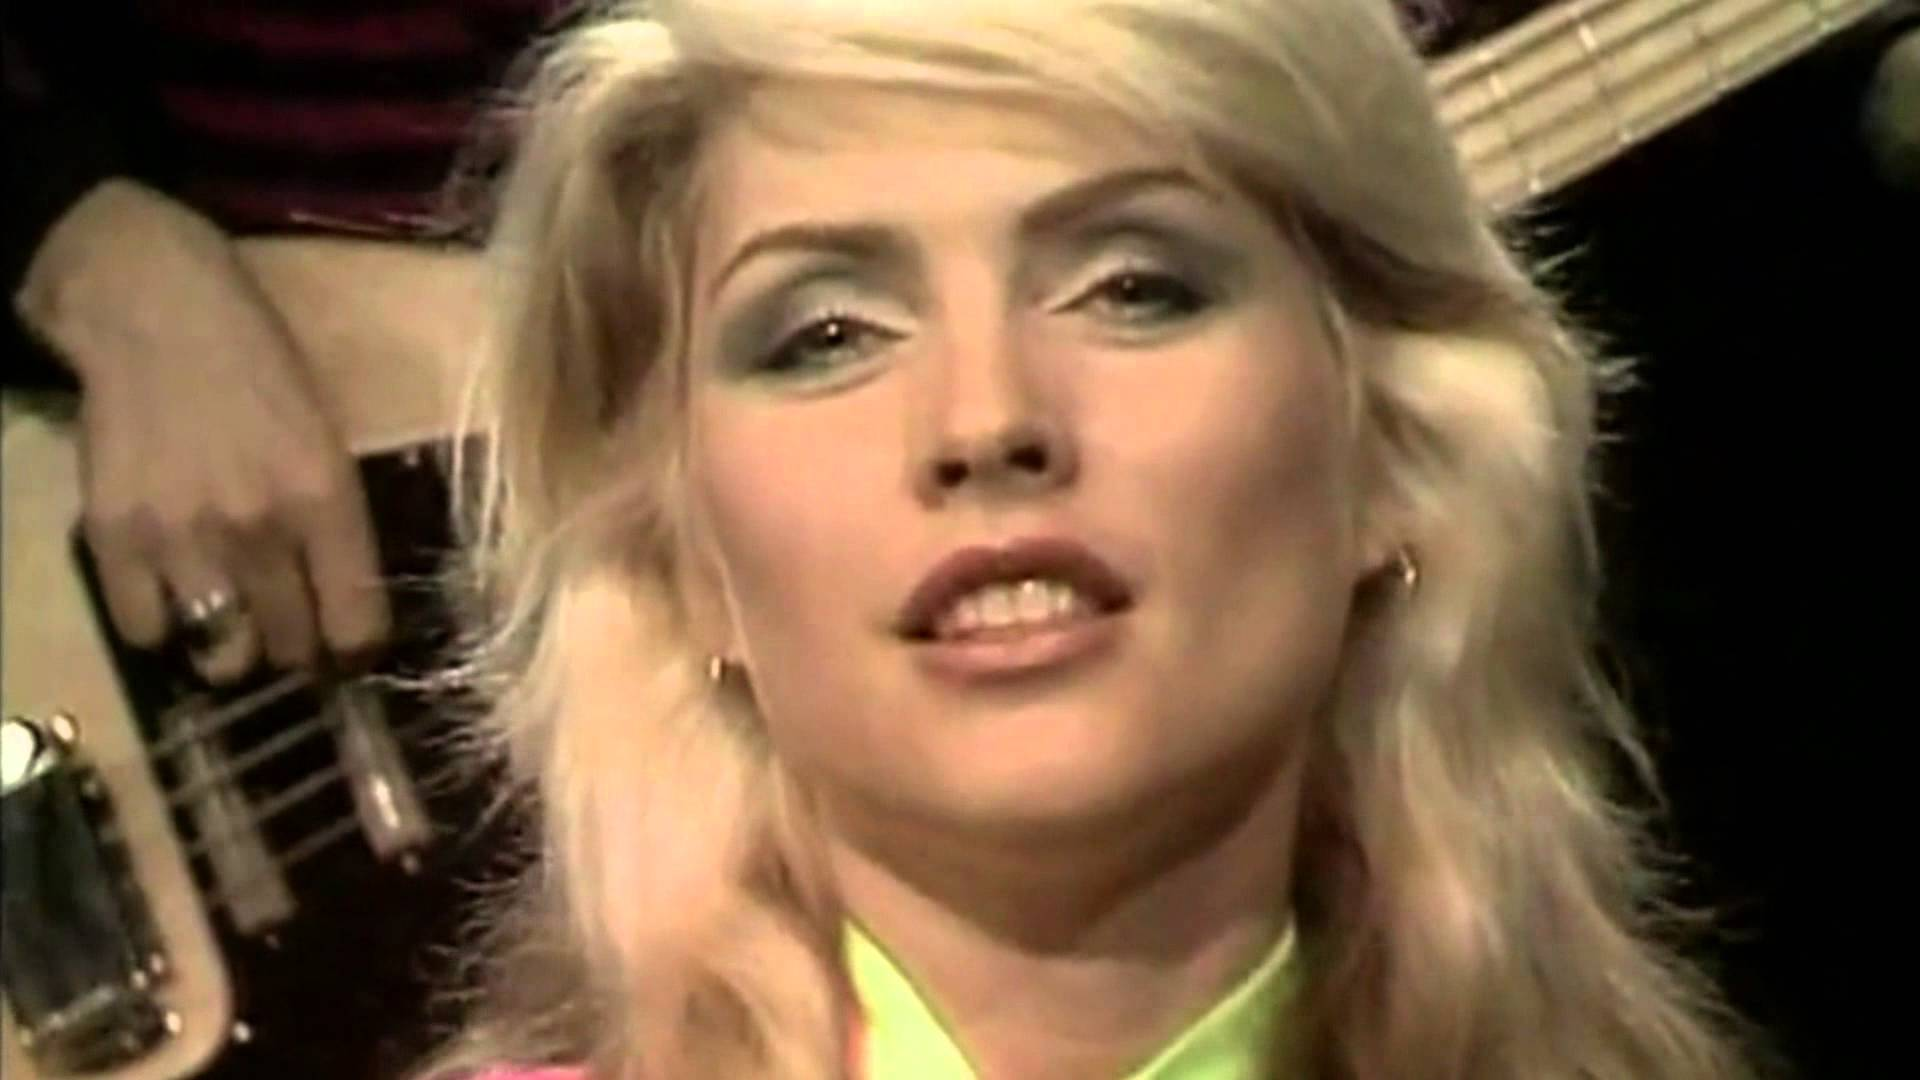 Deborah Harry wrote the song Heart of Glass